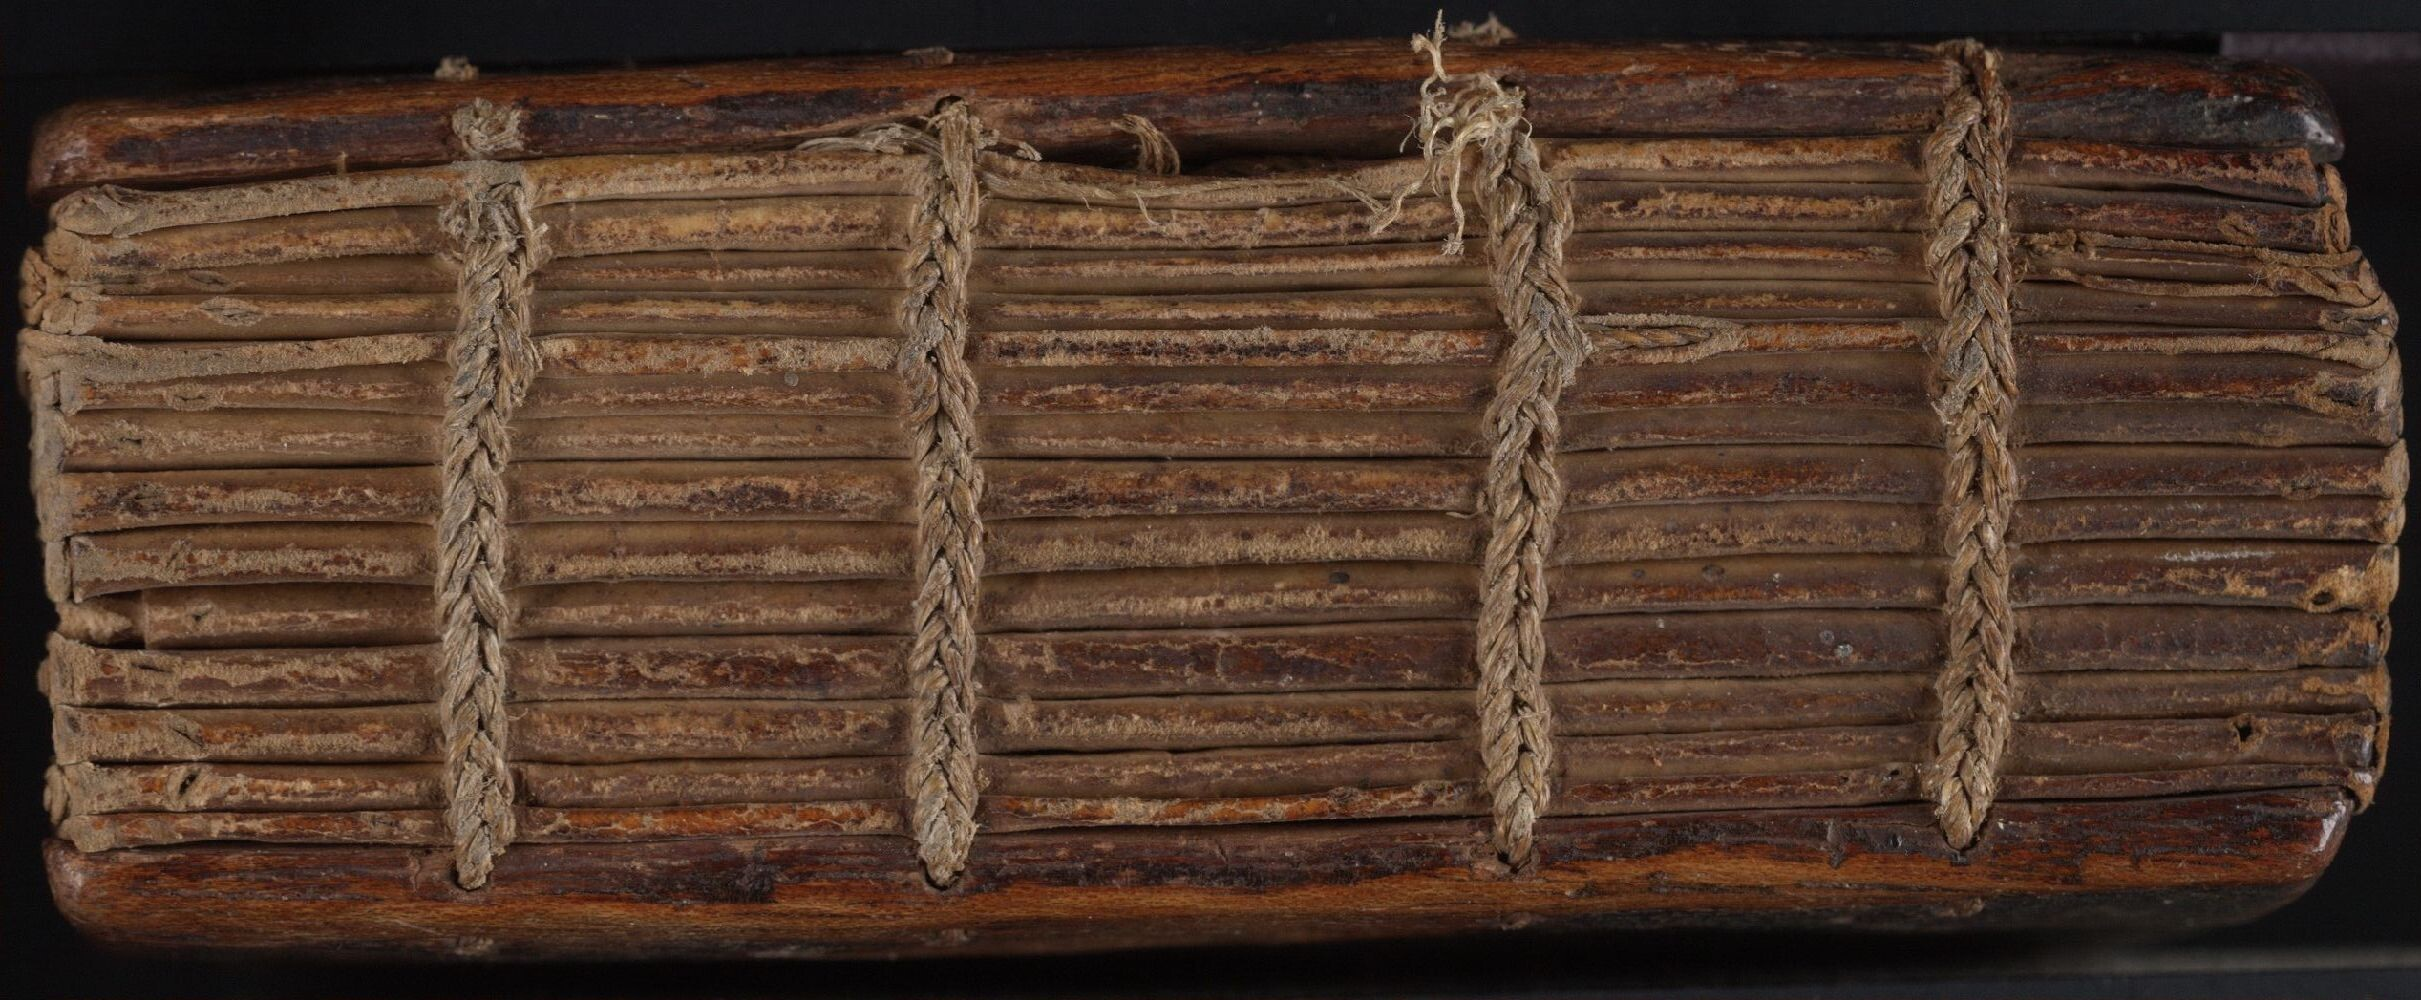 Ethiopic MSS 5. Side of a codex, displaying chain stitching binding.